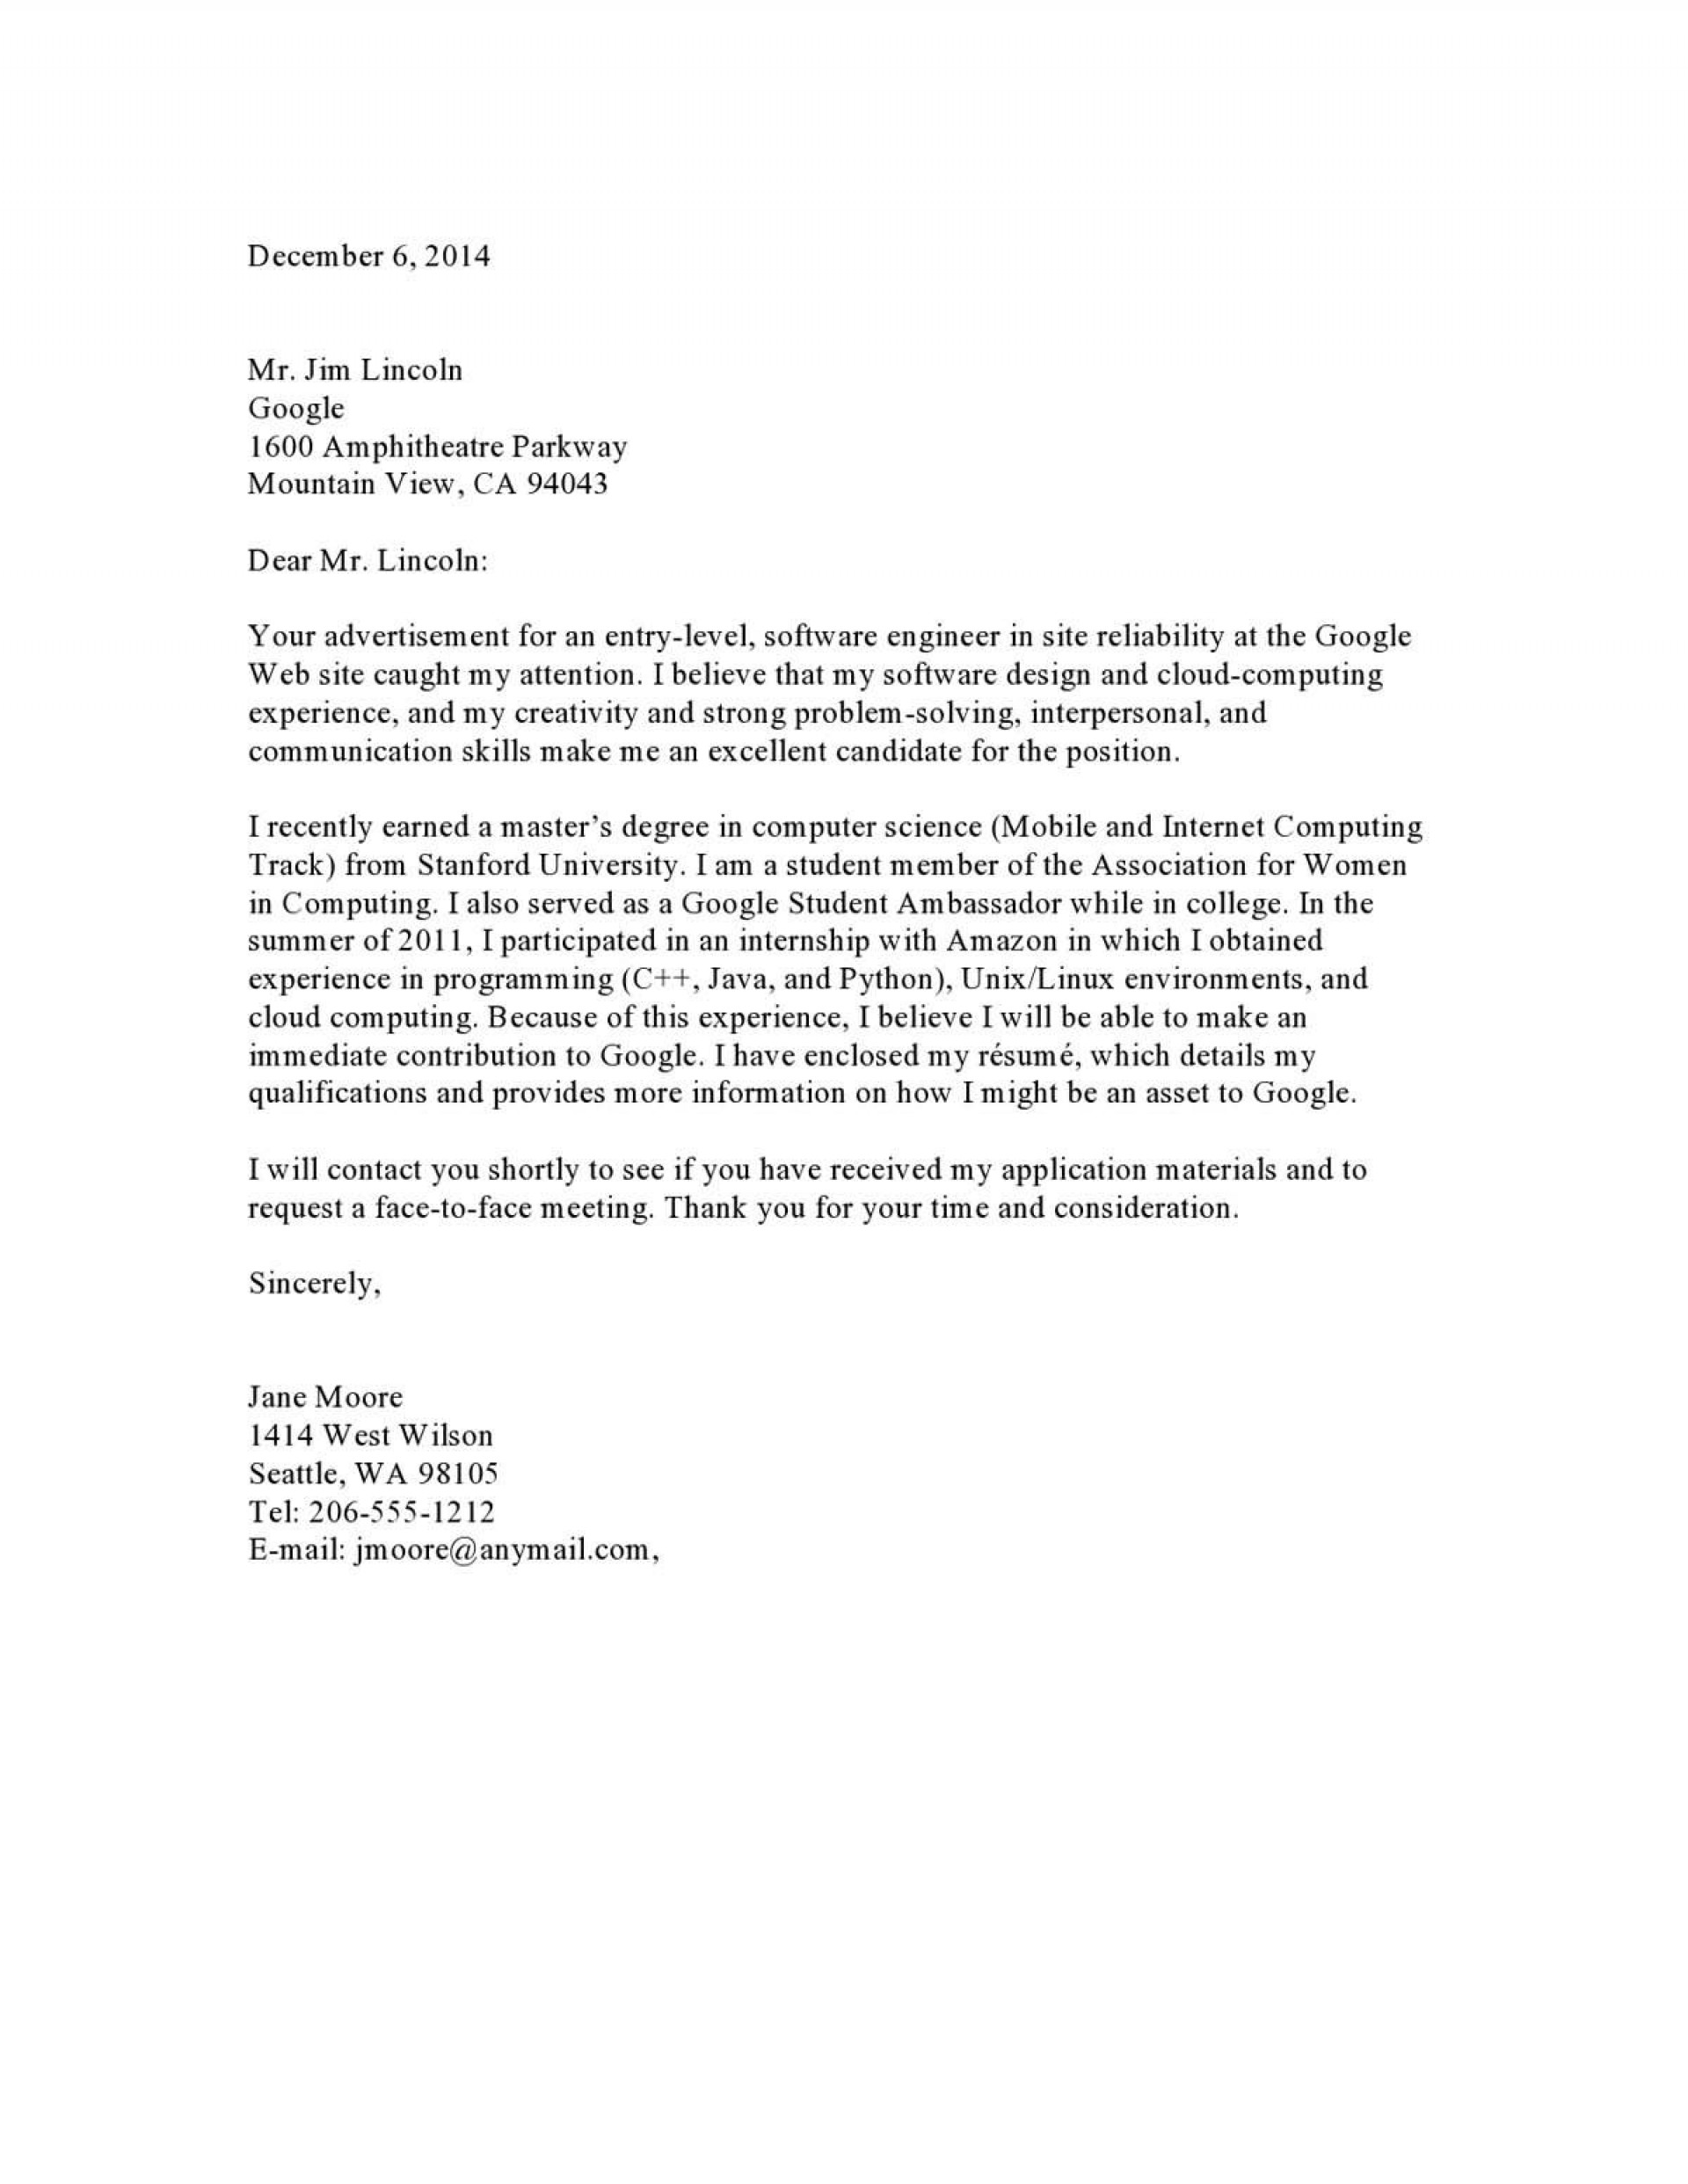 004 Fascinating Cover Letter For Internship Template Highest Quality  Free Engineering Example Summer1920